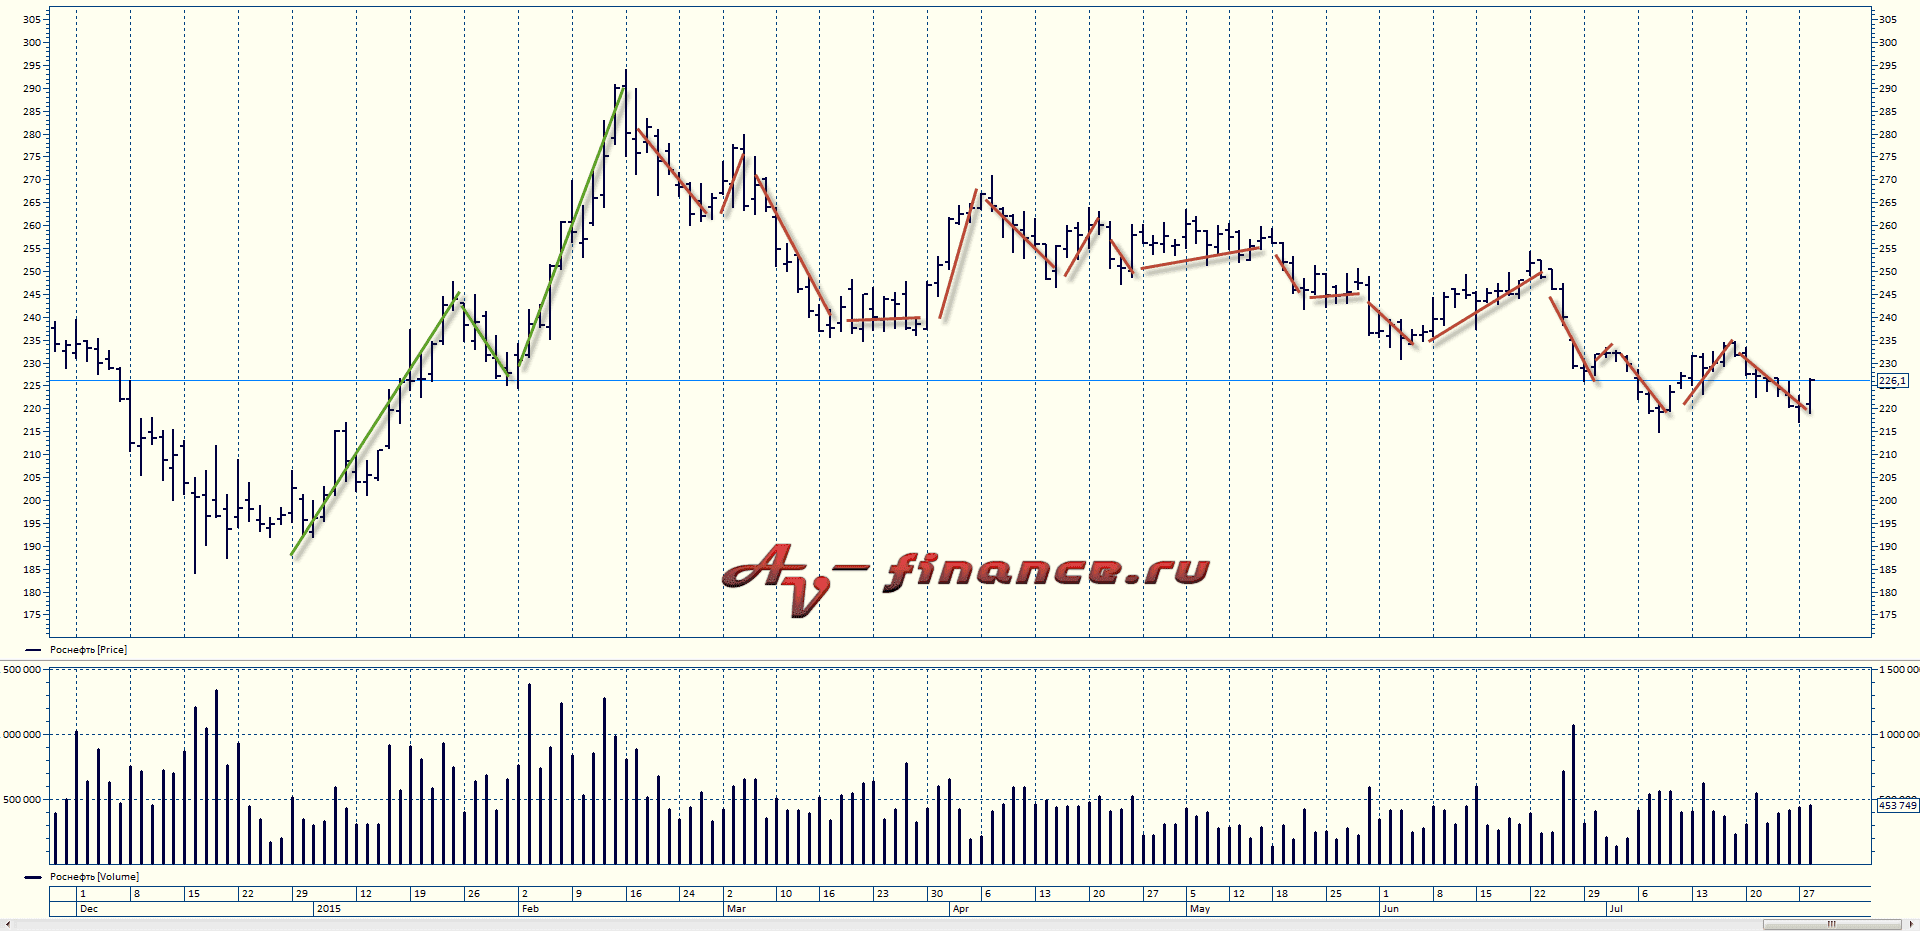 price-action-rosneft-2